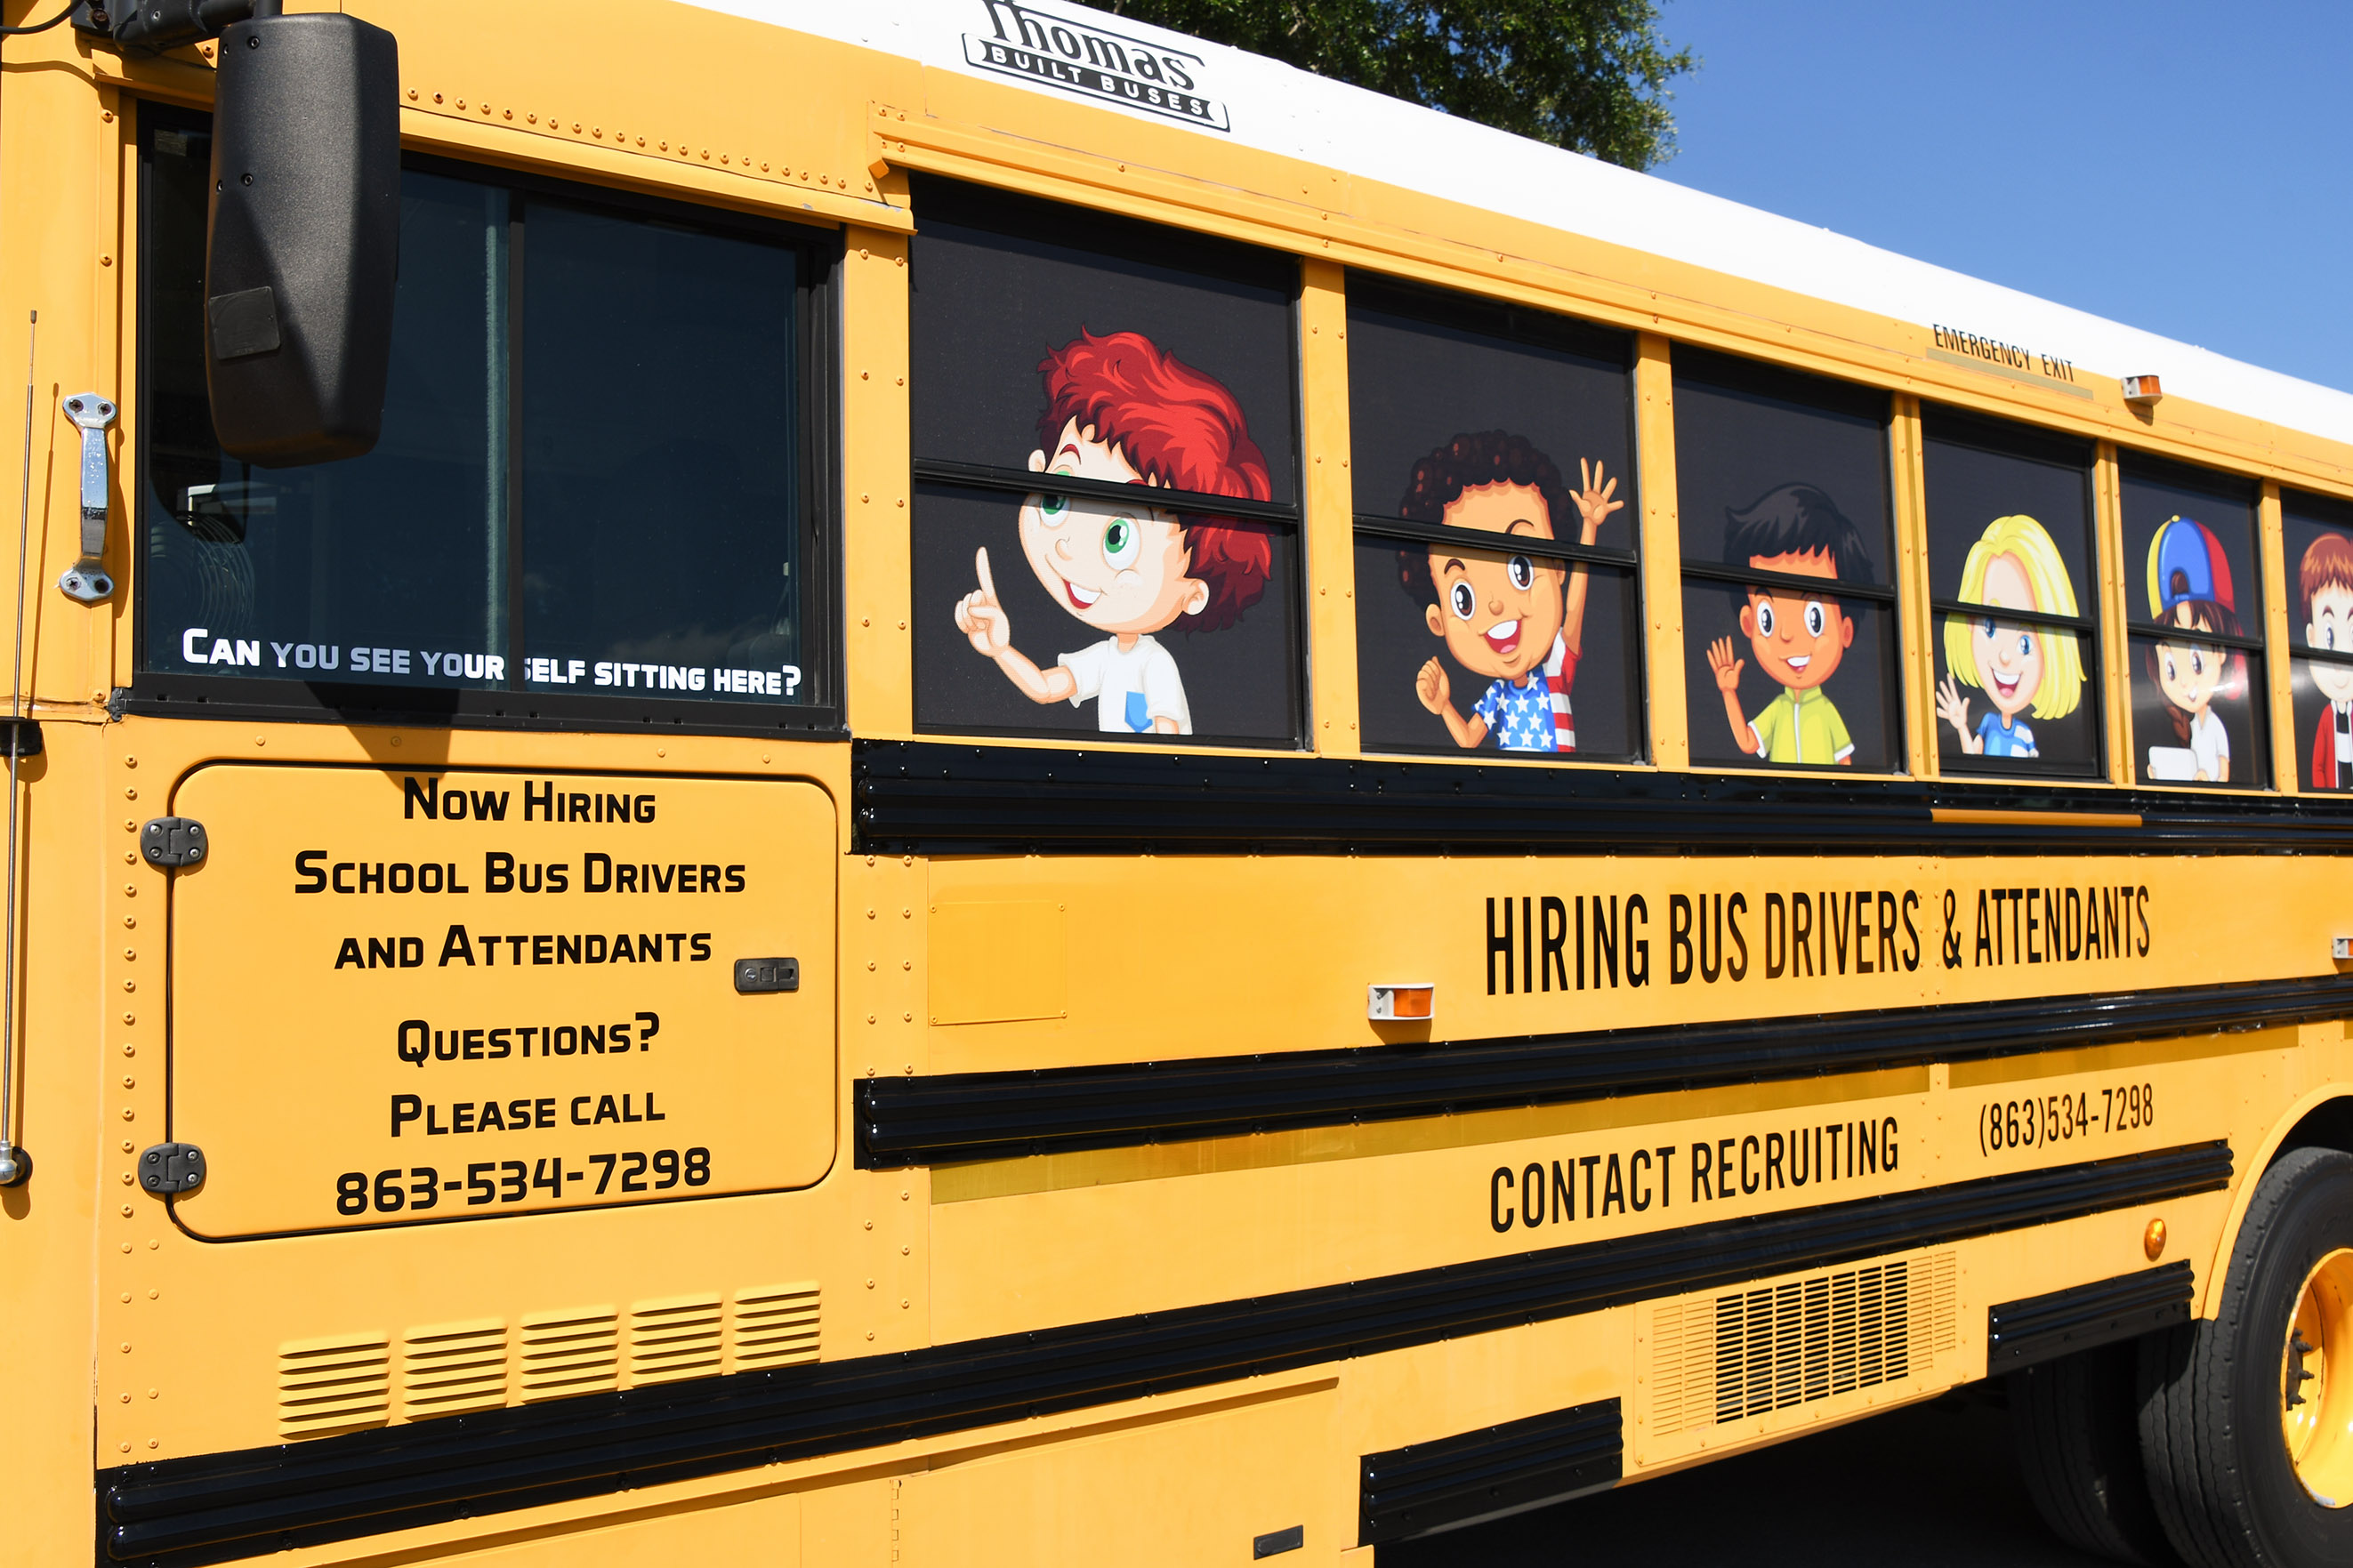 Photo of the PCPS recruiting bus